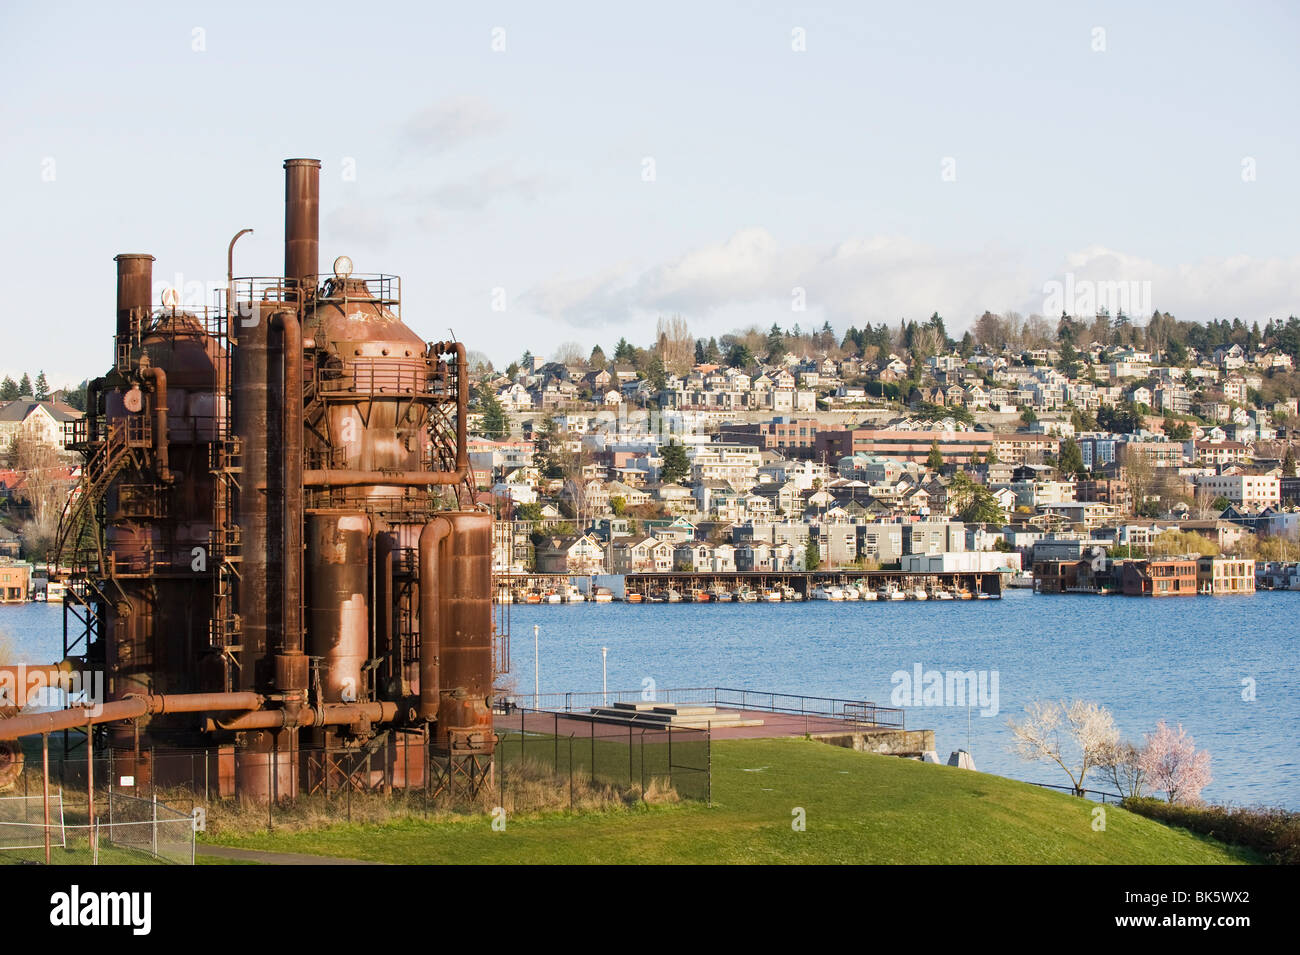 Gas Works Park, Lake Union, Seattle, Washington State, United States of America, North America Stock Photo